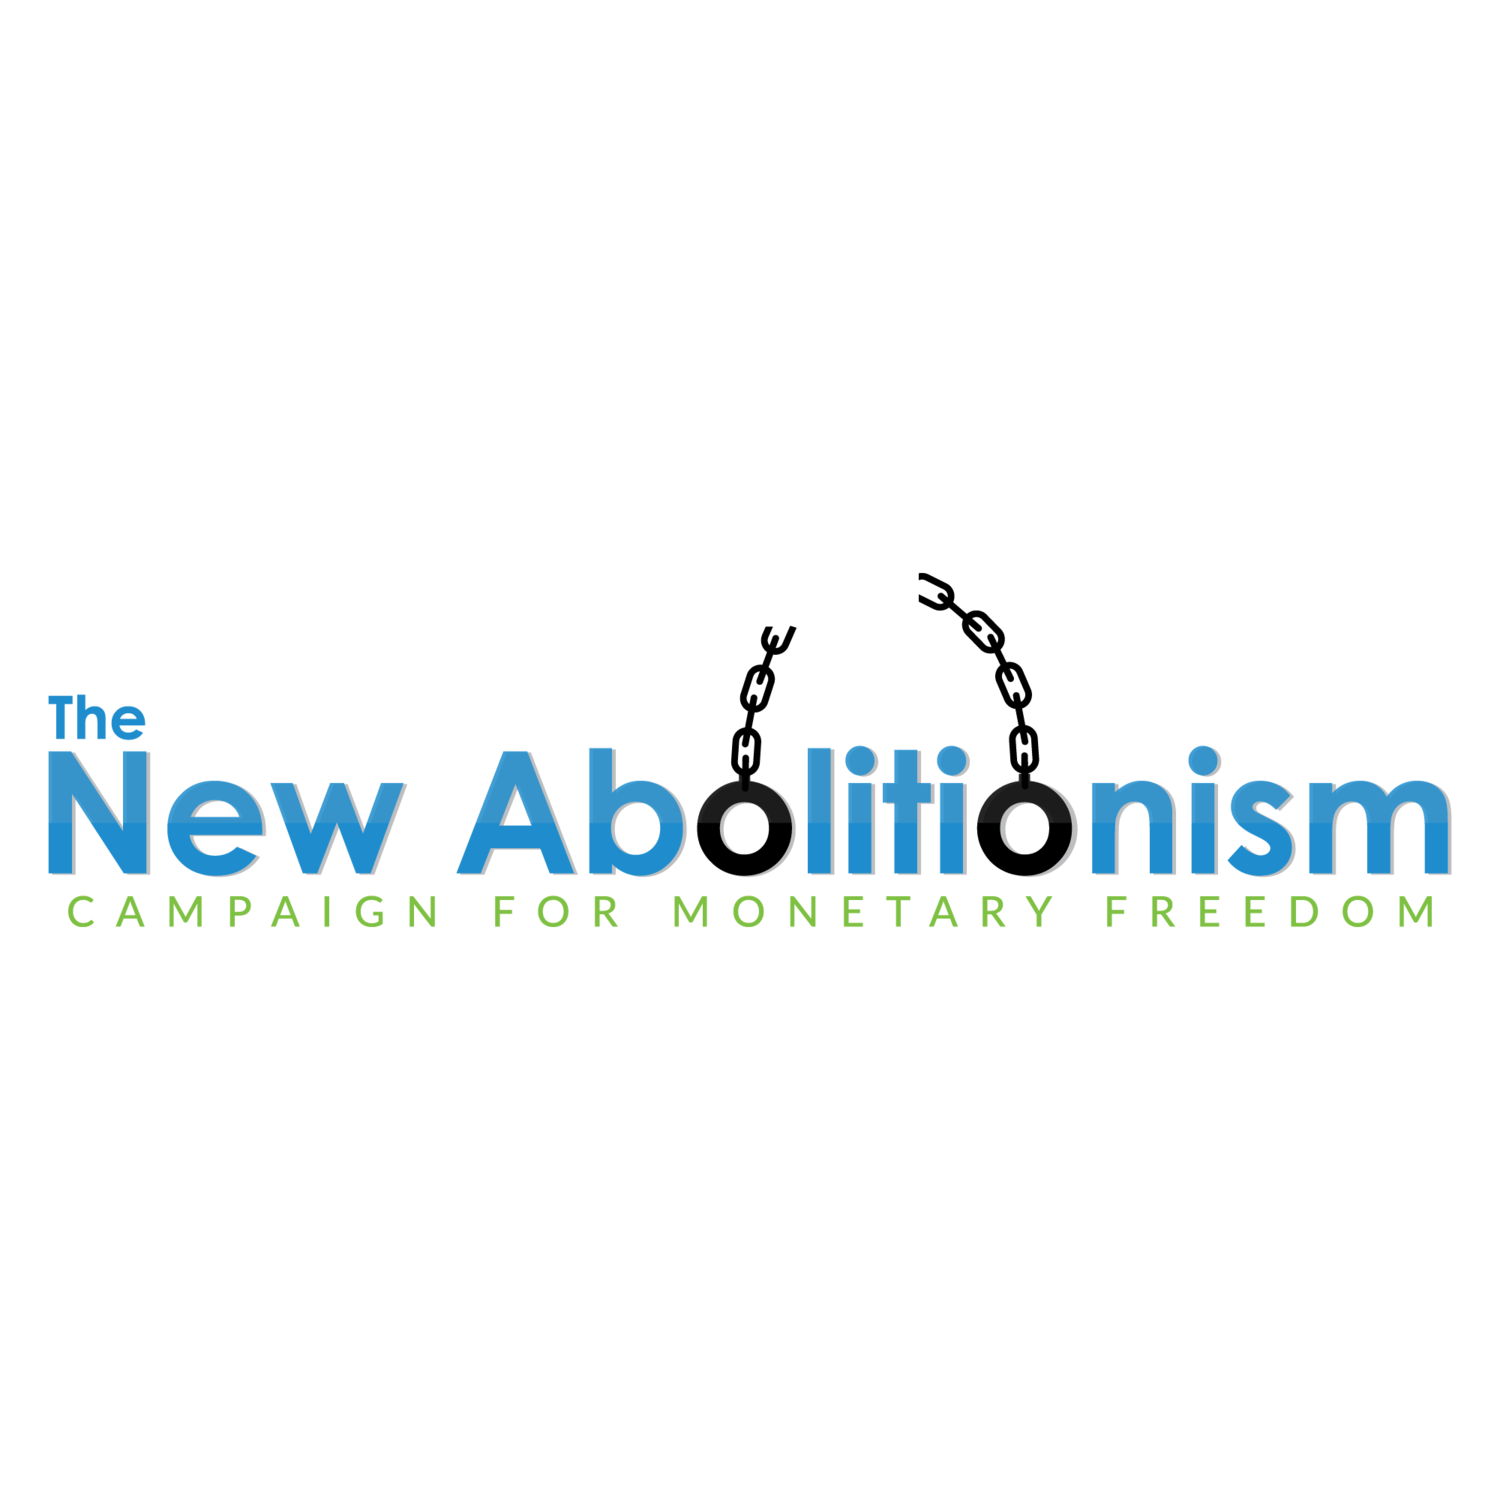 The New Abolitionism